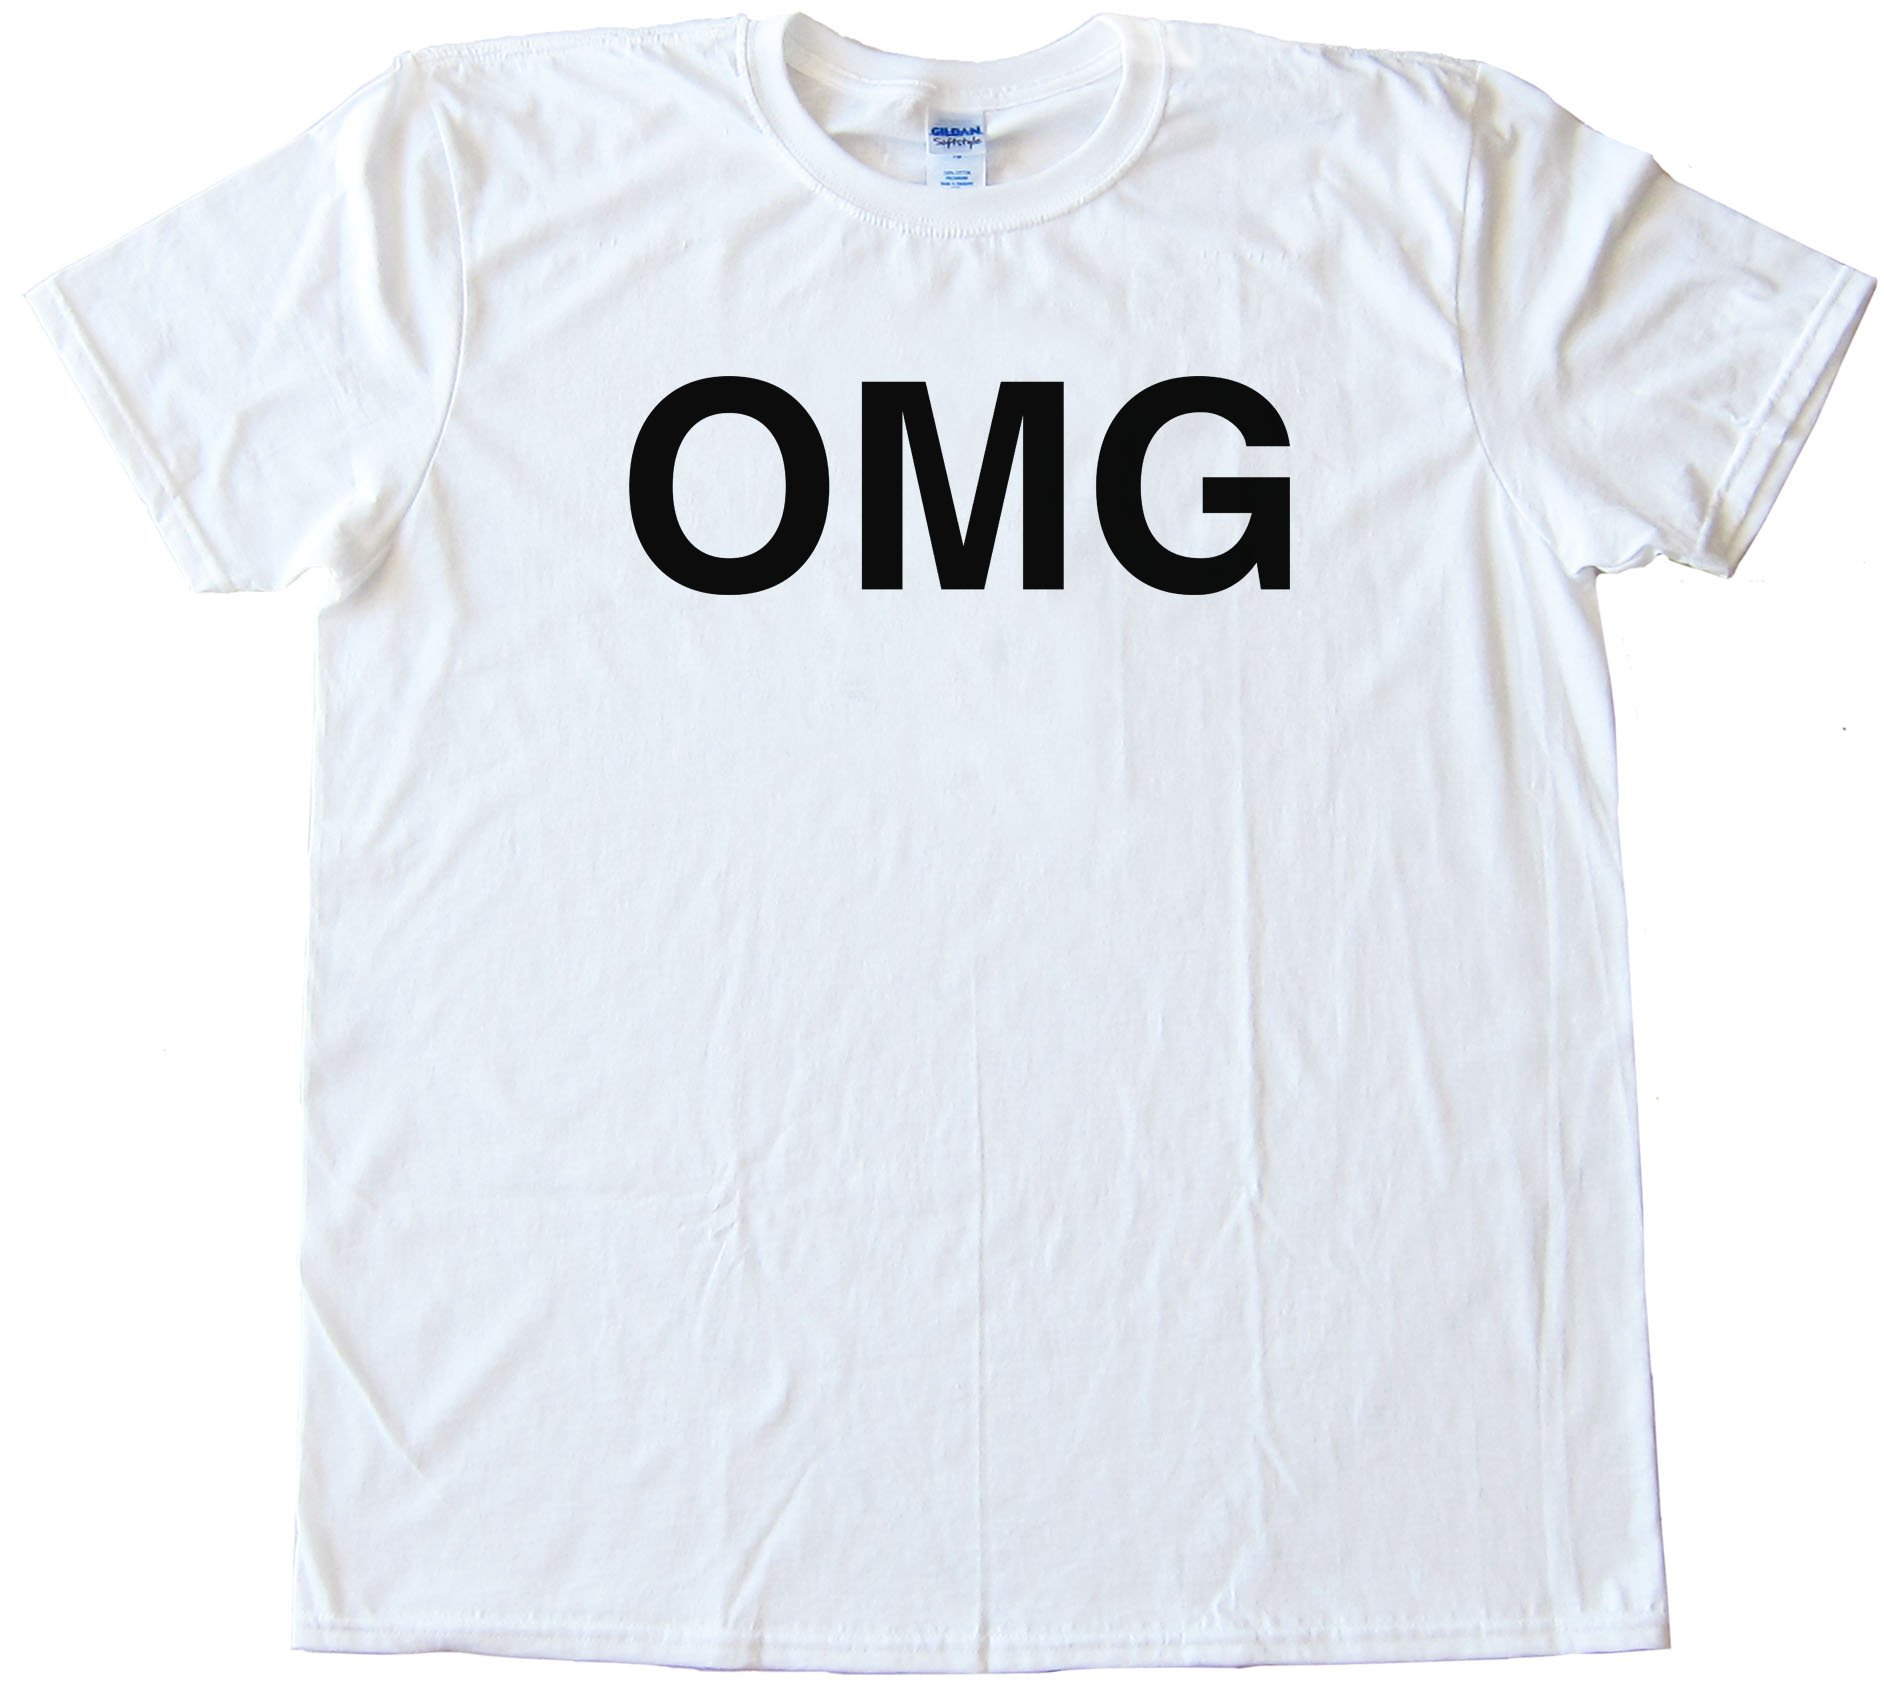 Omg Oh My God Sms Text - Tee Shirt